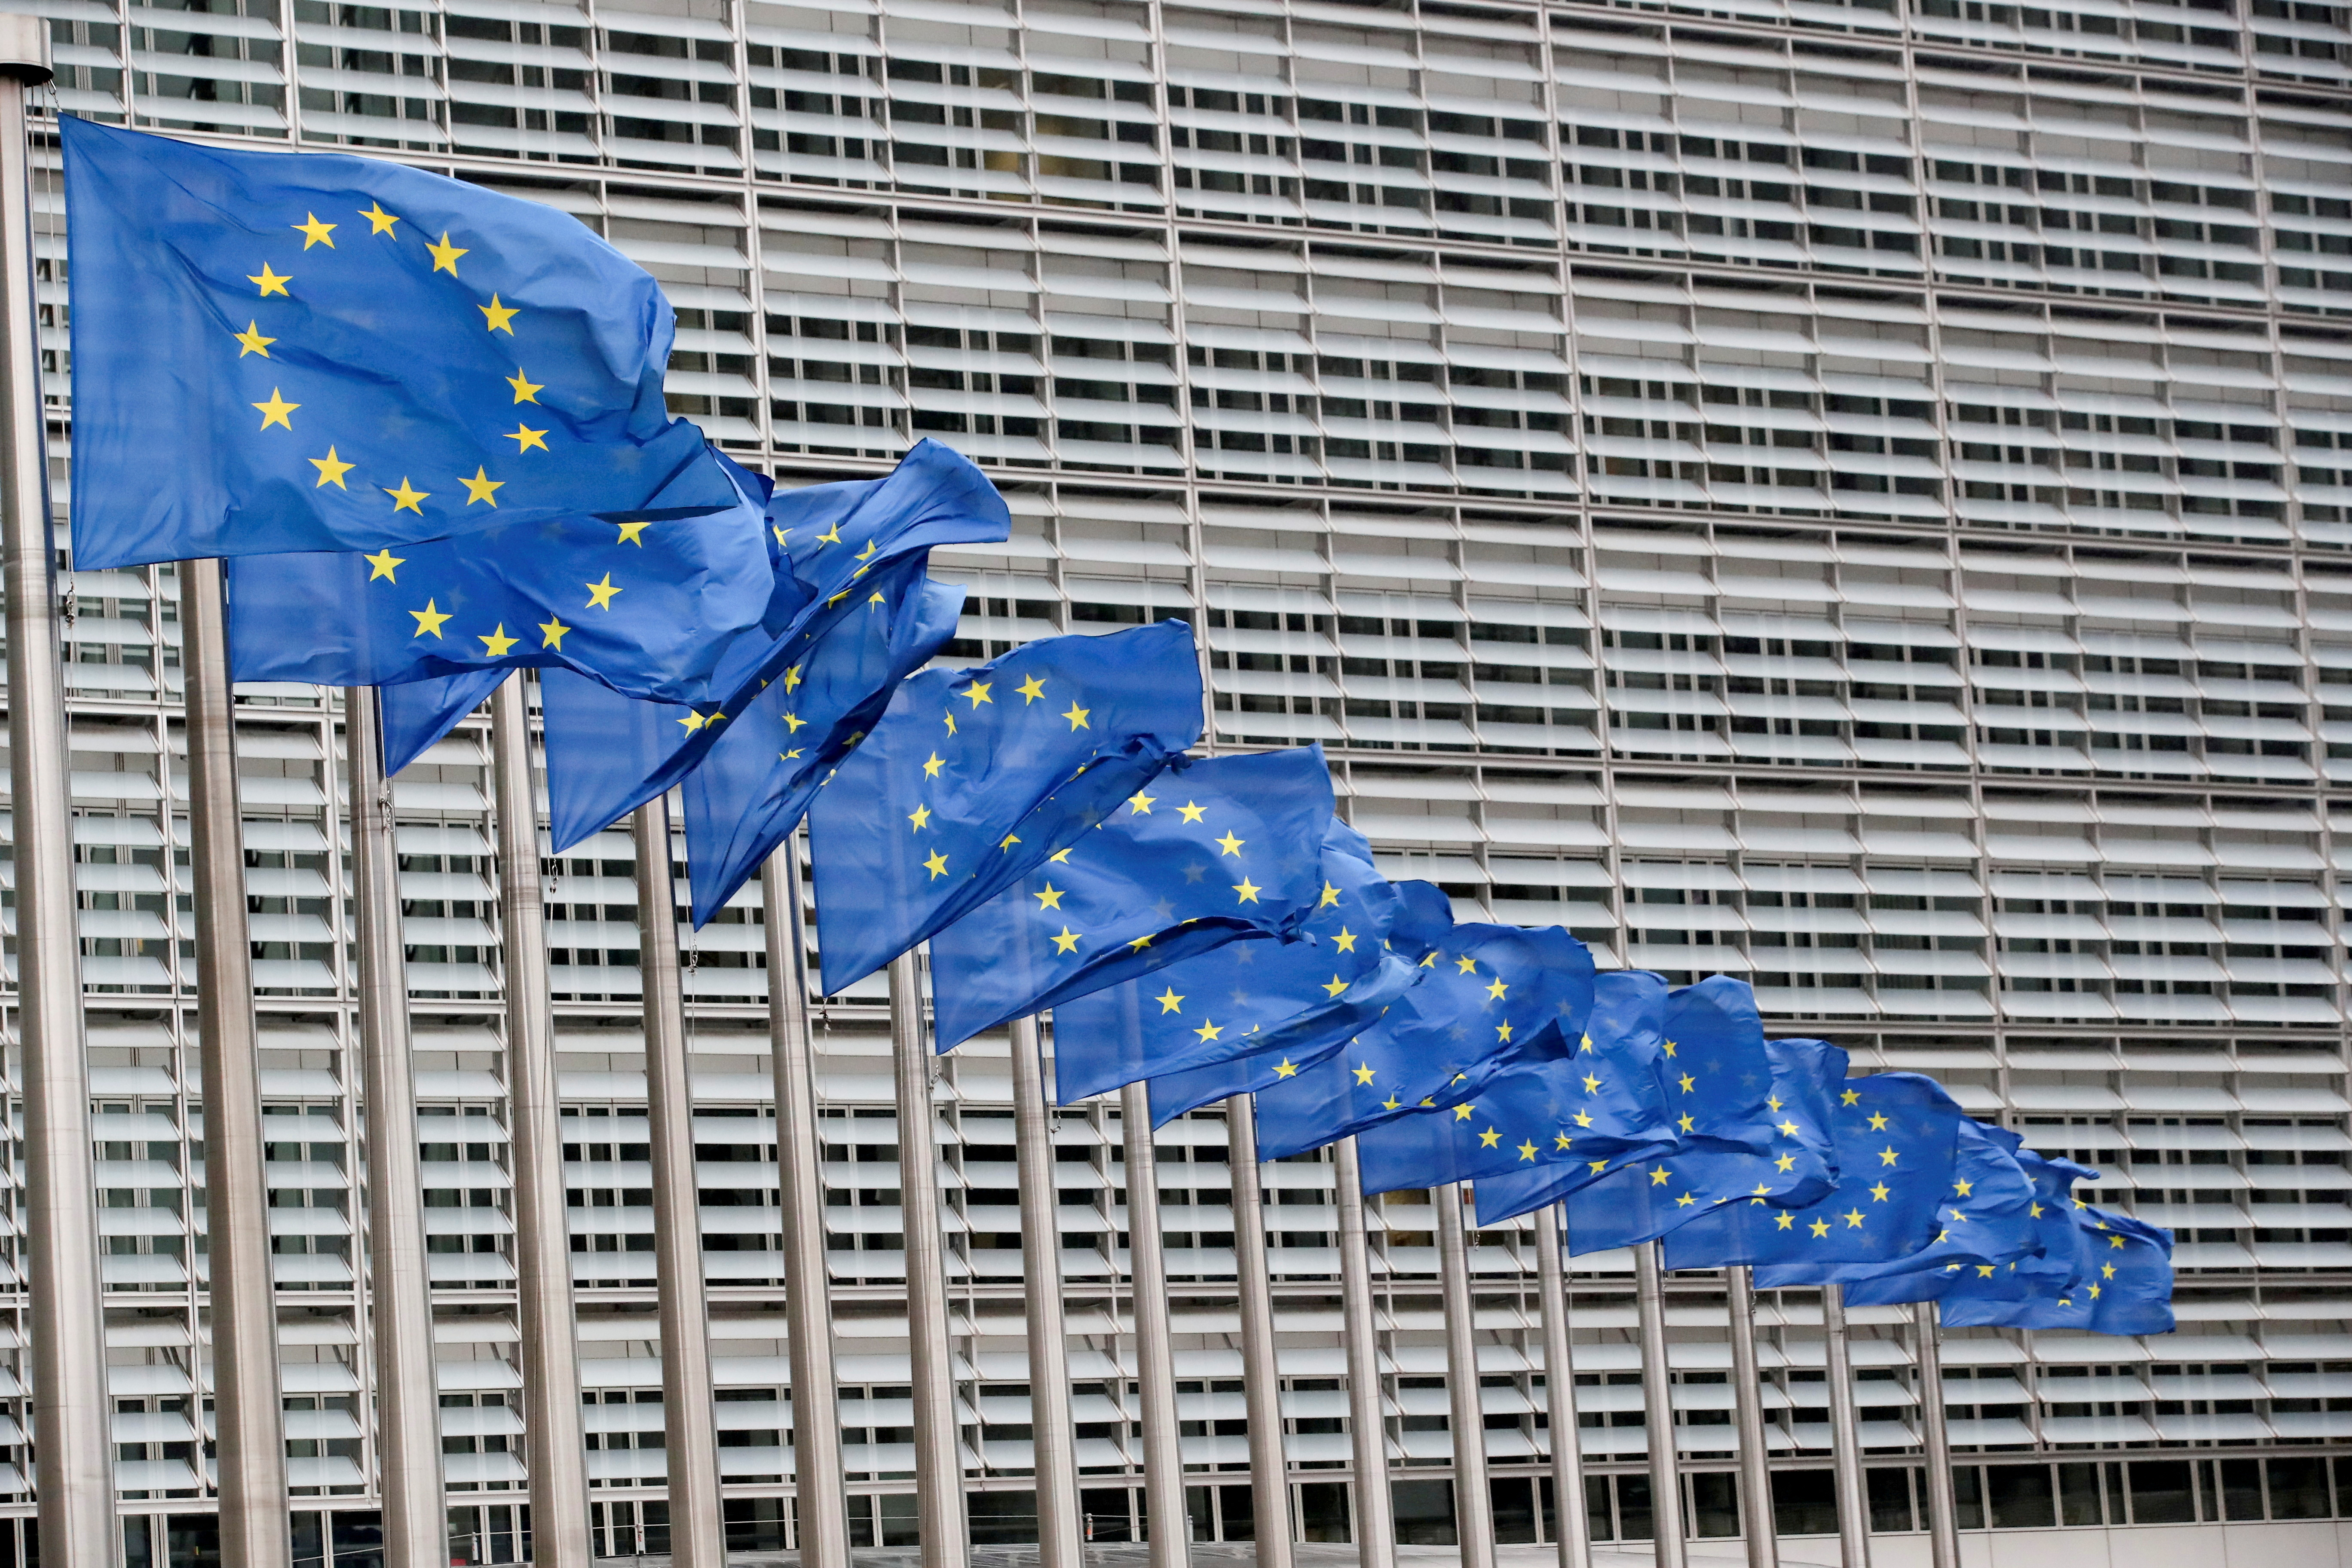 European Union flags flutter outside the EU Commission headquarters in Brussels, Belgium, July 14, 2021. REUTERS/Yves Herman